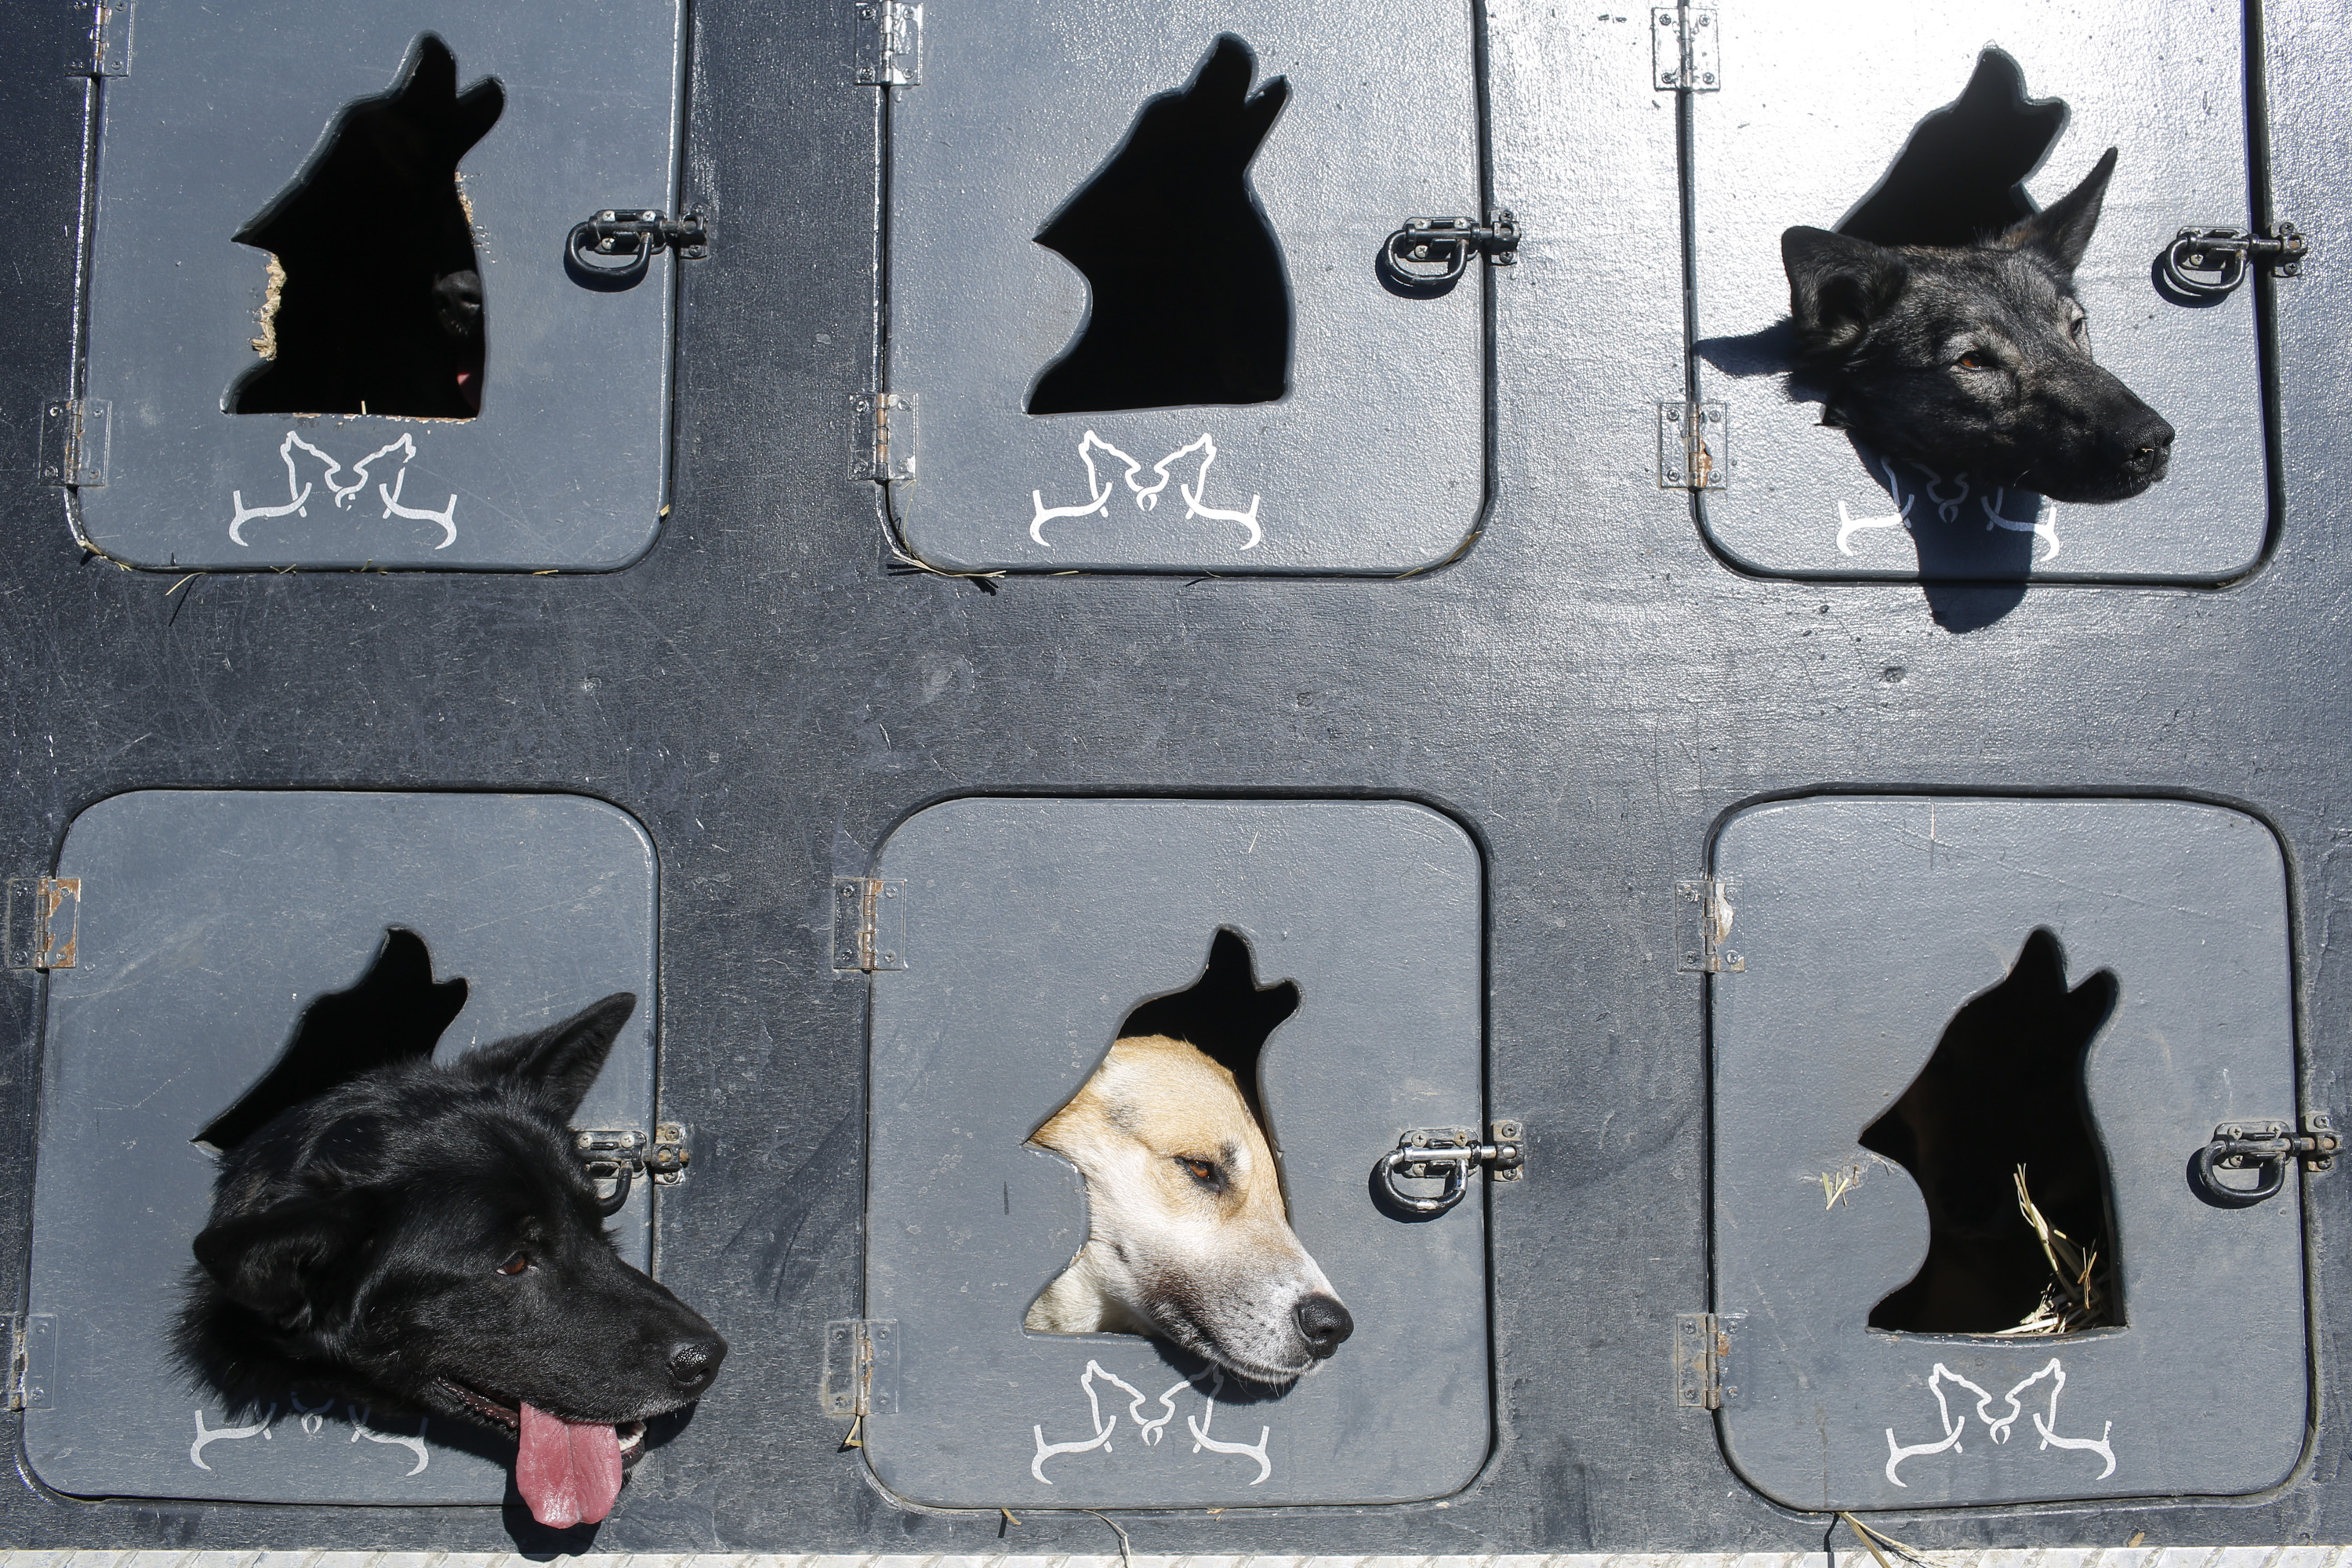 Musher Justin Savidis' dogs wait in a truck before the restart of the Iditarod Trail Sled Dog Race in Willow, Alaska, on March 6, 2016.